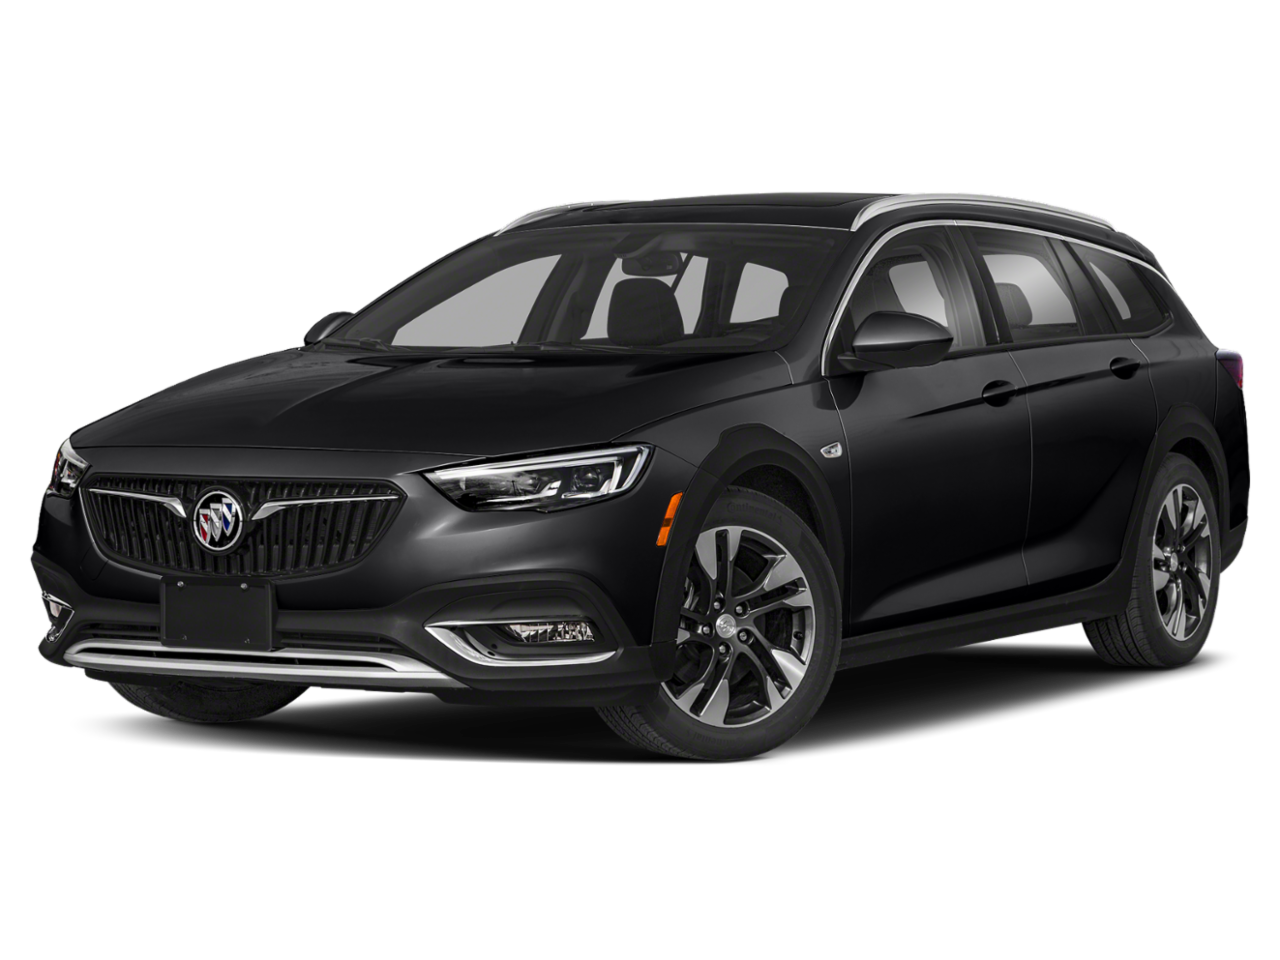 Buick 2020 Regal TourX Preferred